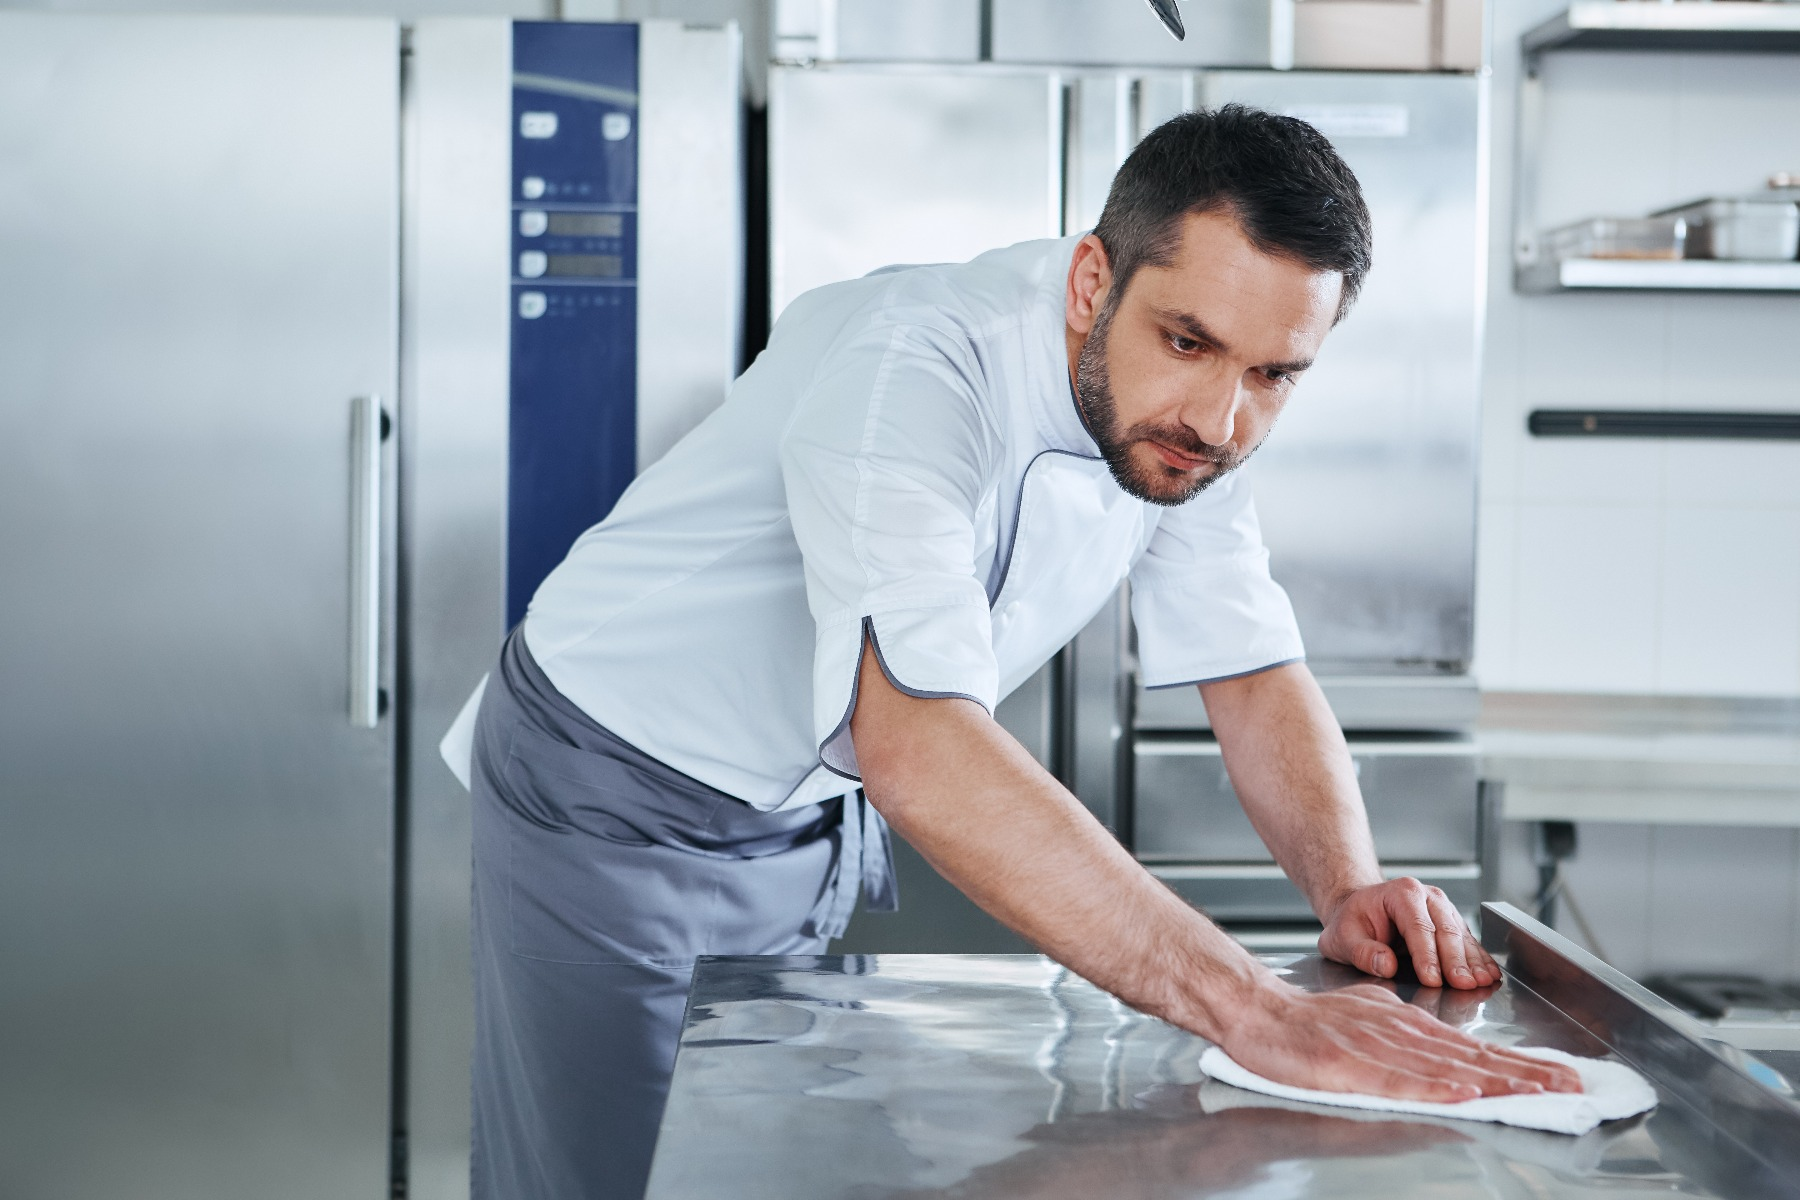 Chef wiping down Stainless Steel table in Commercial Kitchen